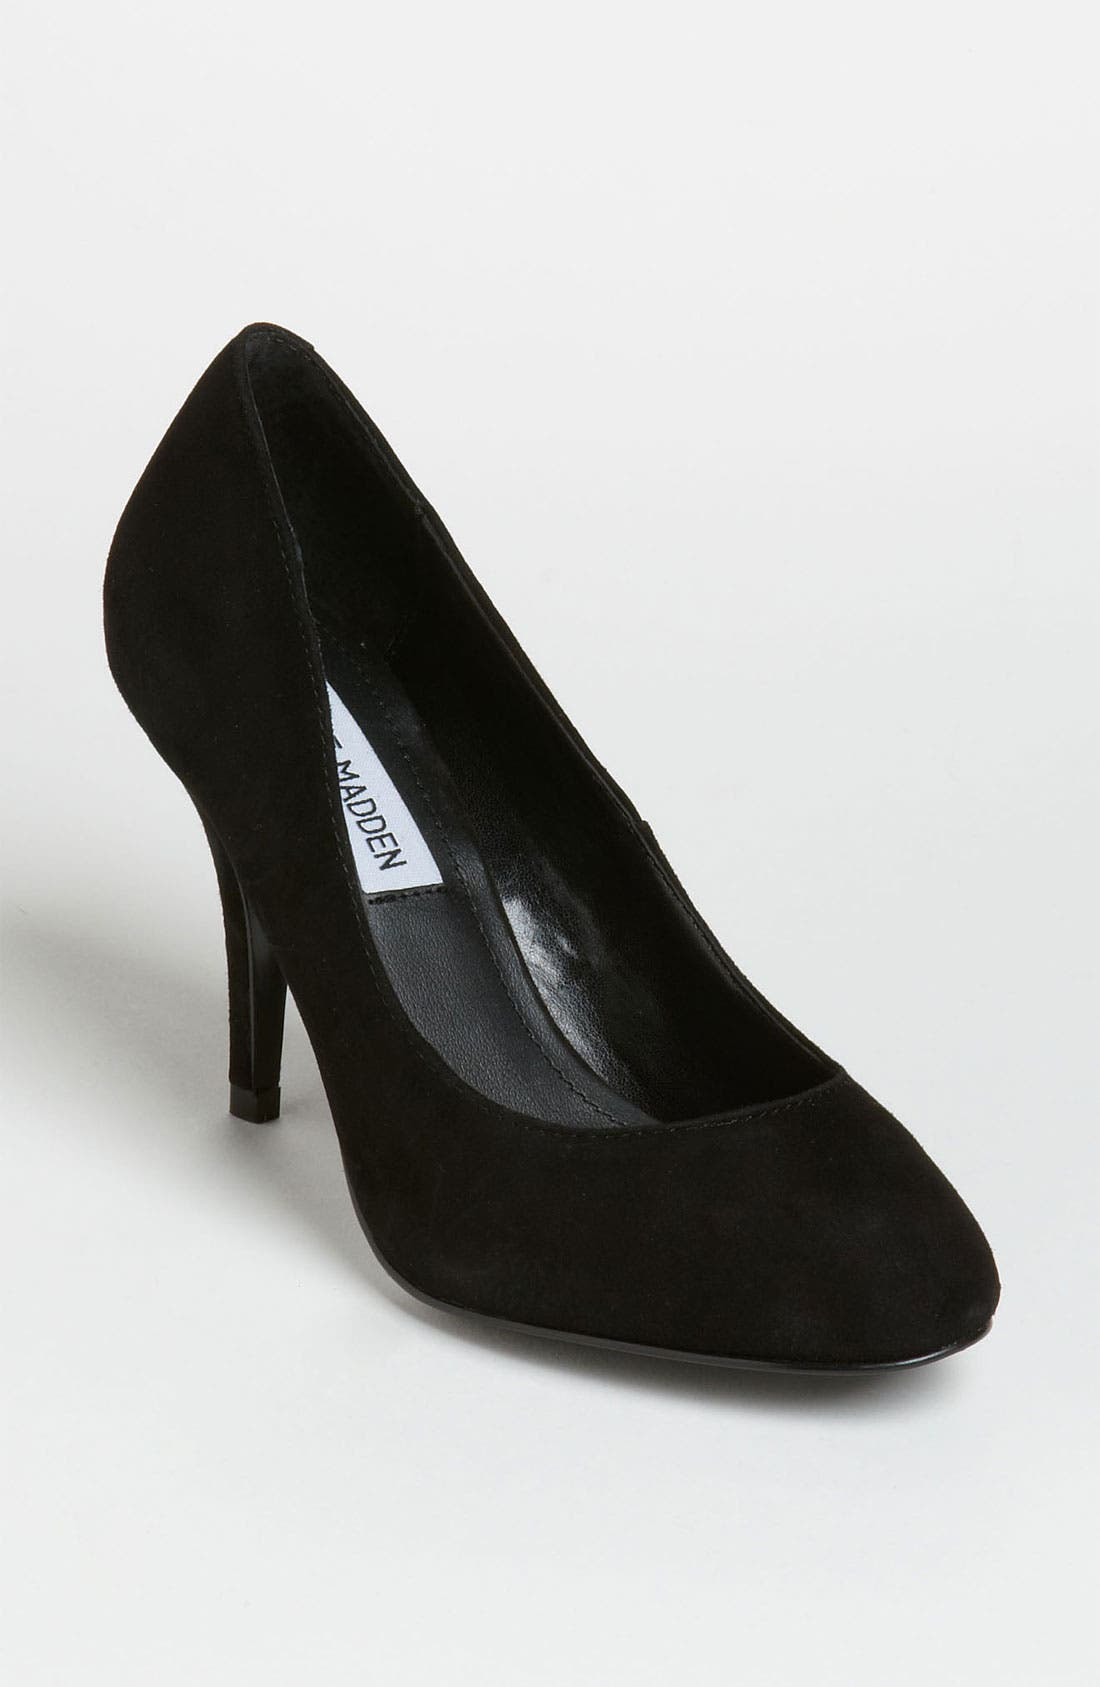 Alternate Image 1 Selected - Steve Madden 'Contrvsy' Pump